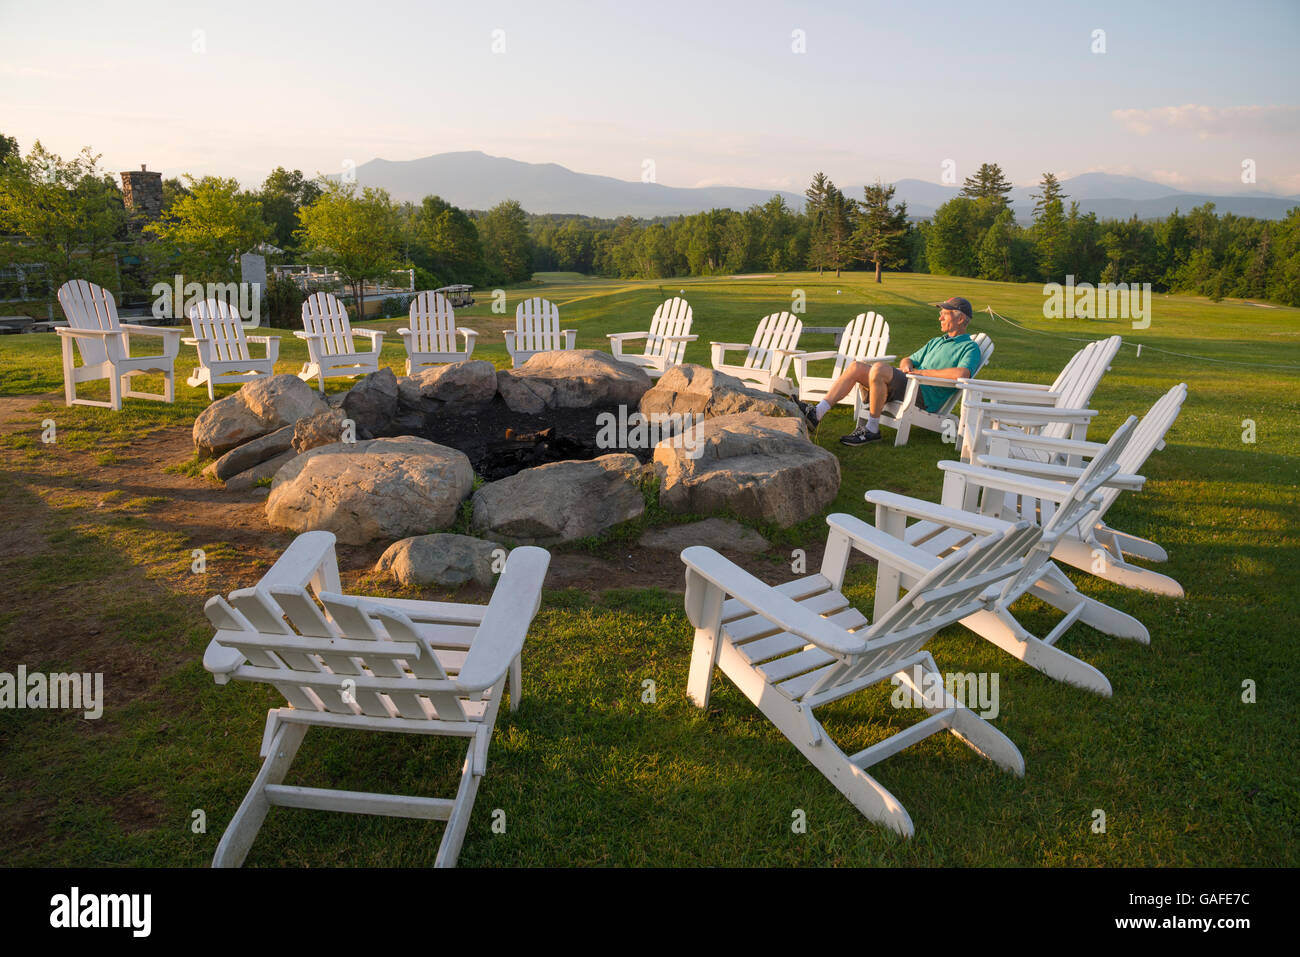 Adirondack Chairs Around Fire Pit Summer Mountain View